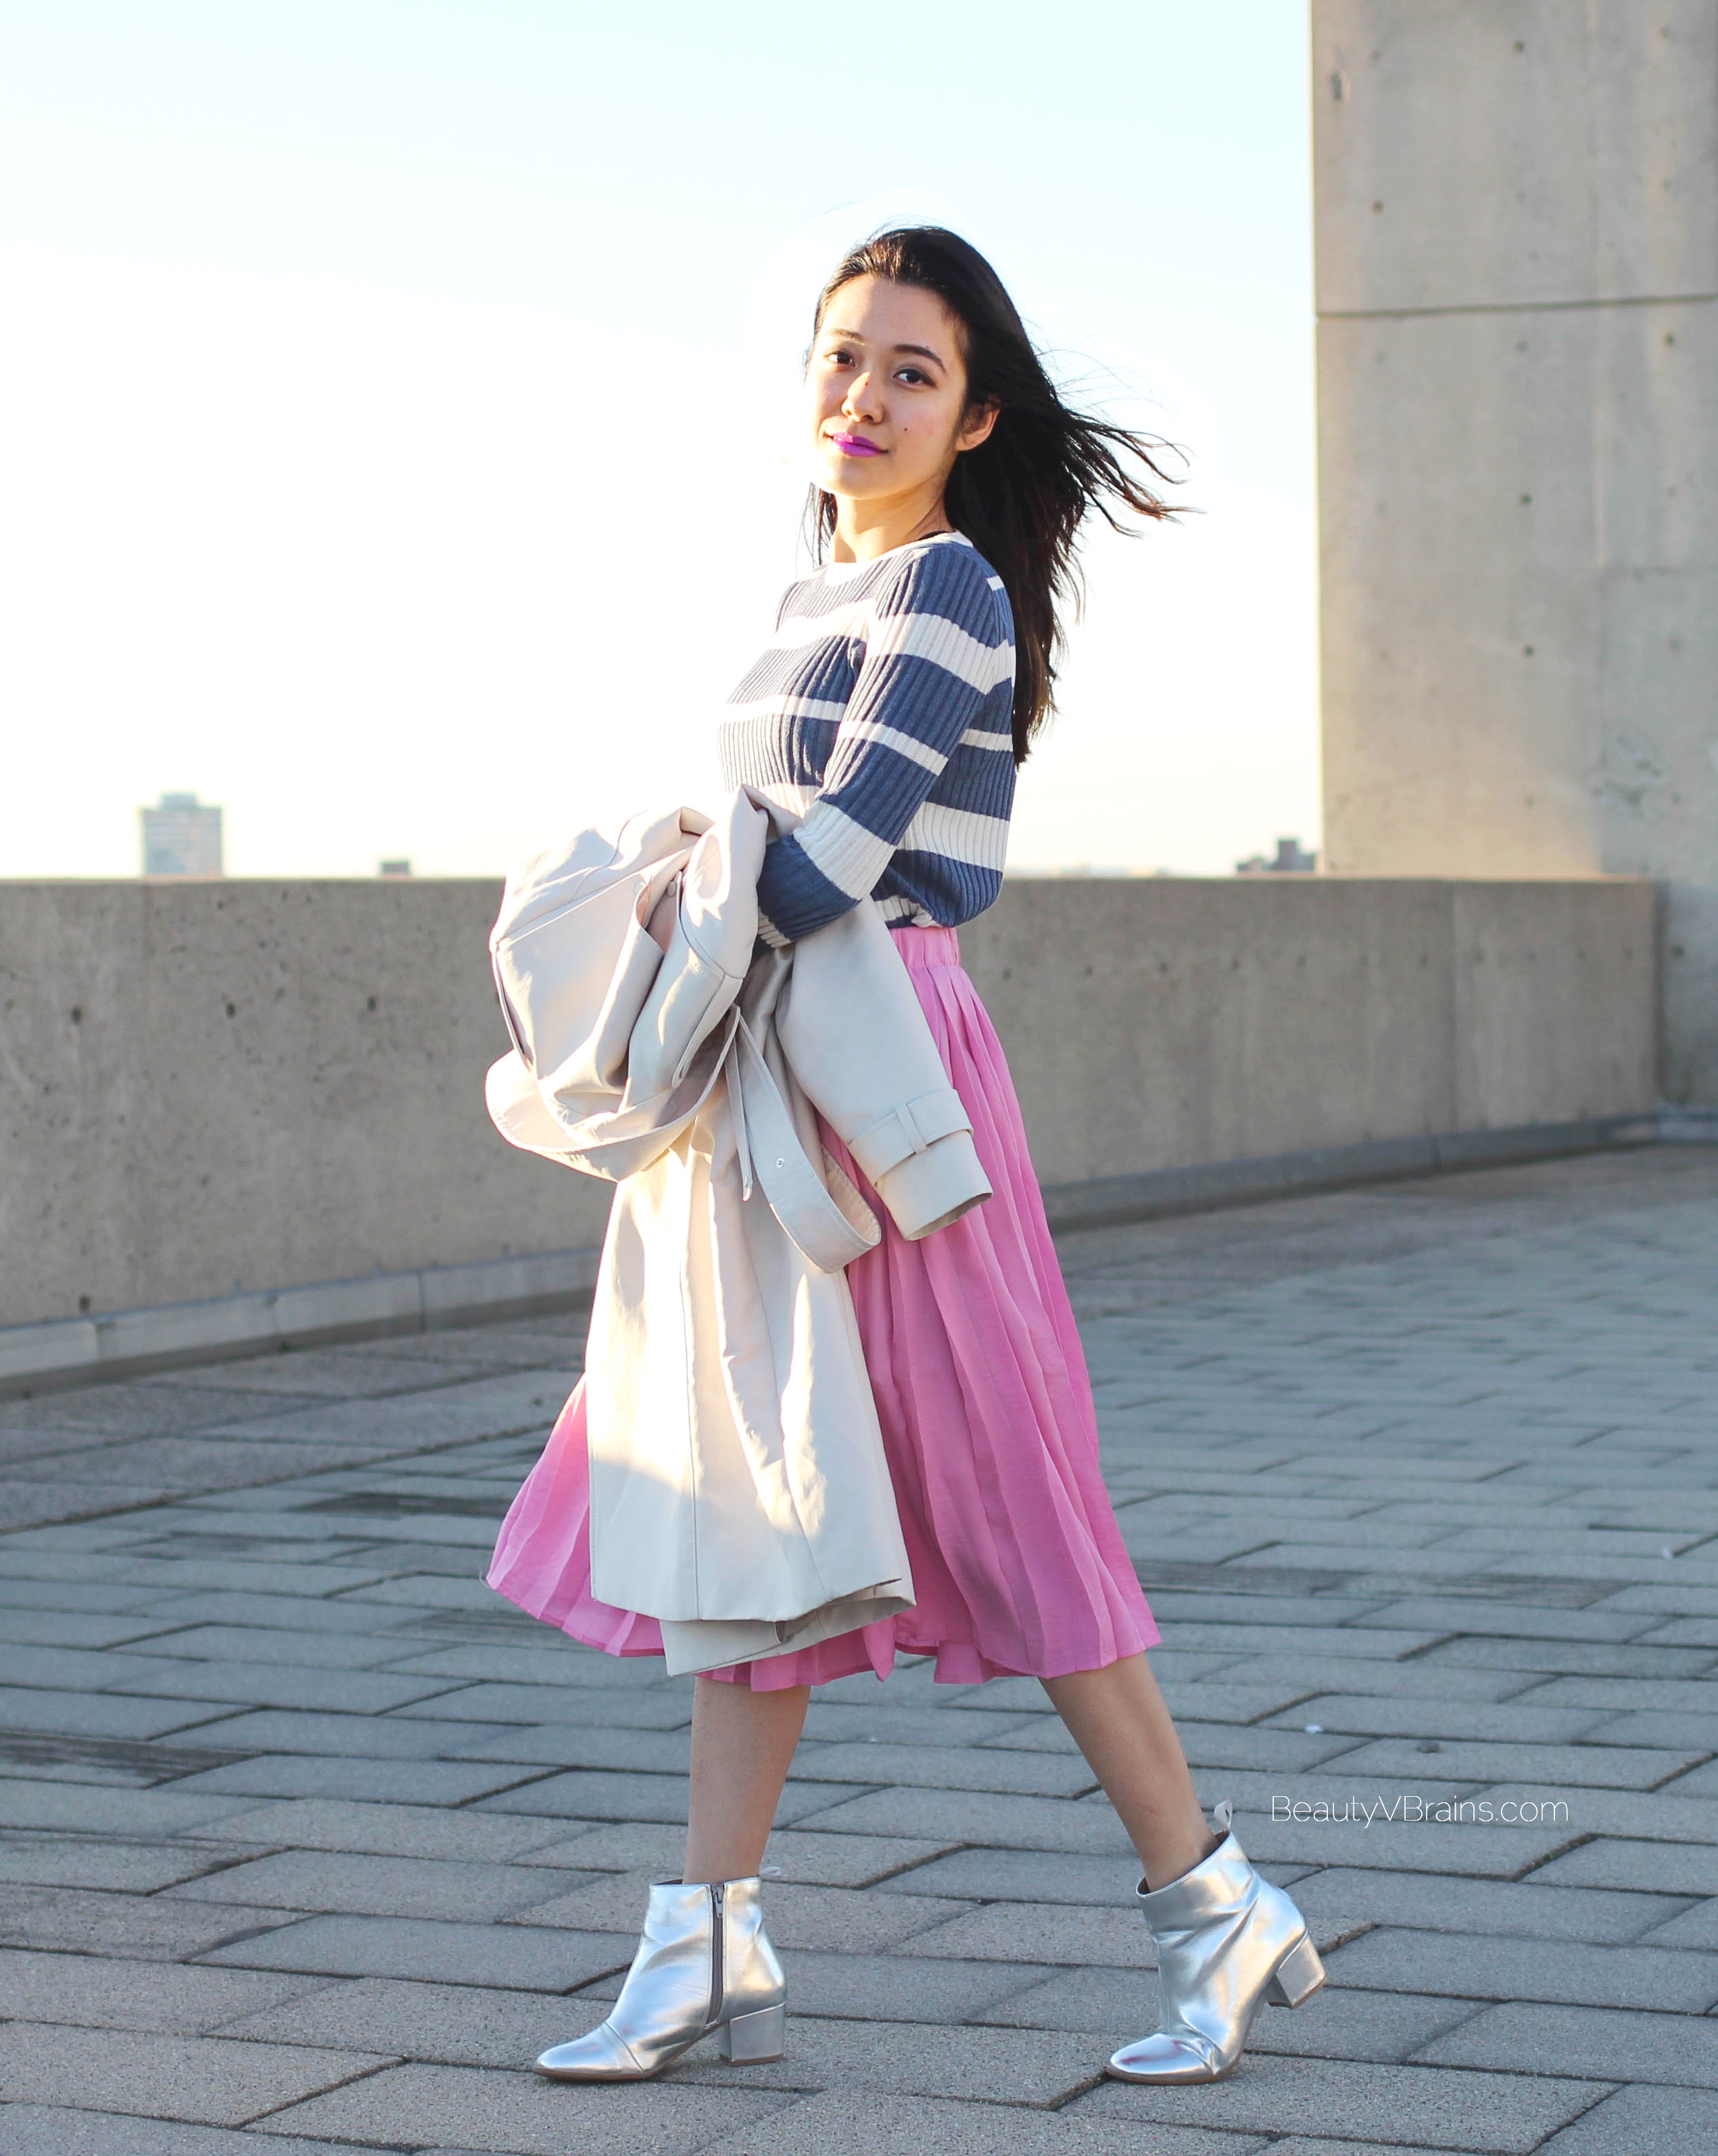 Pink pleated skirt and trench coat - Easy spring outfit inspiration